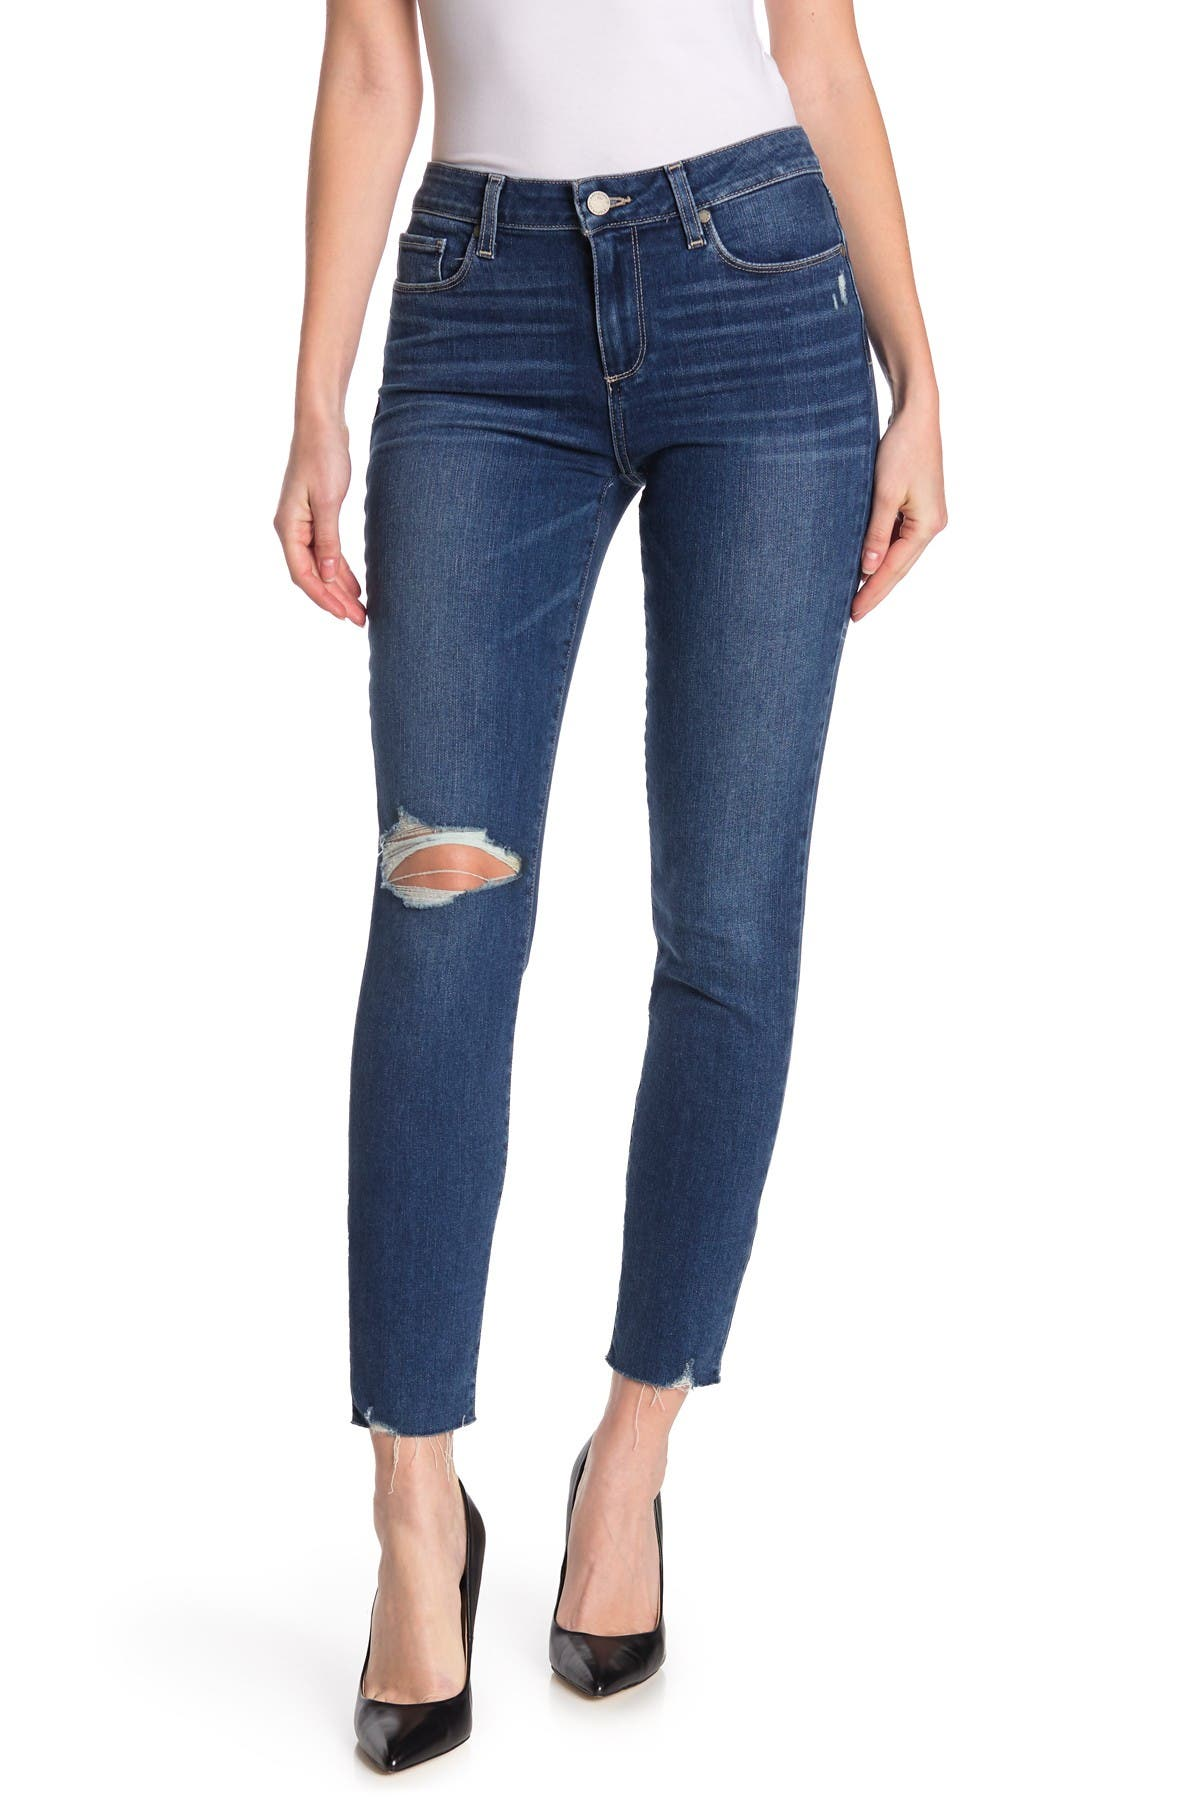 Image of PAIGE Verdugo Distressed Ankle Cut Jeans